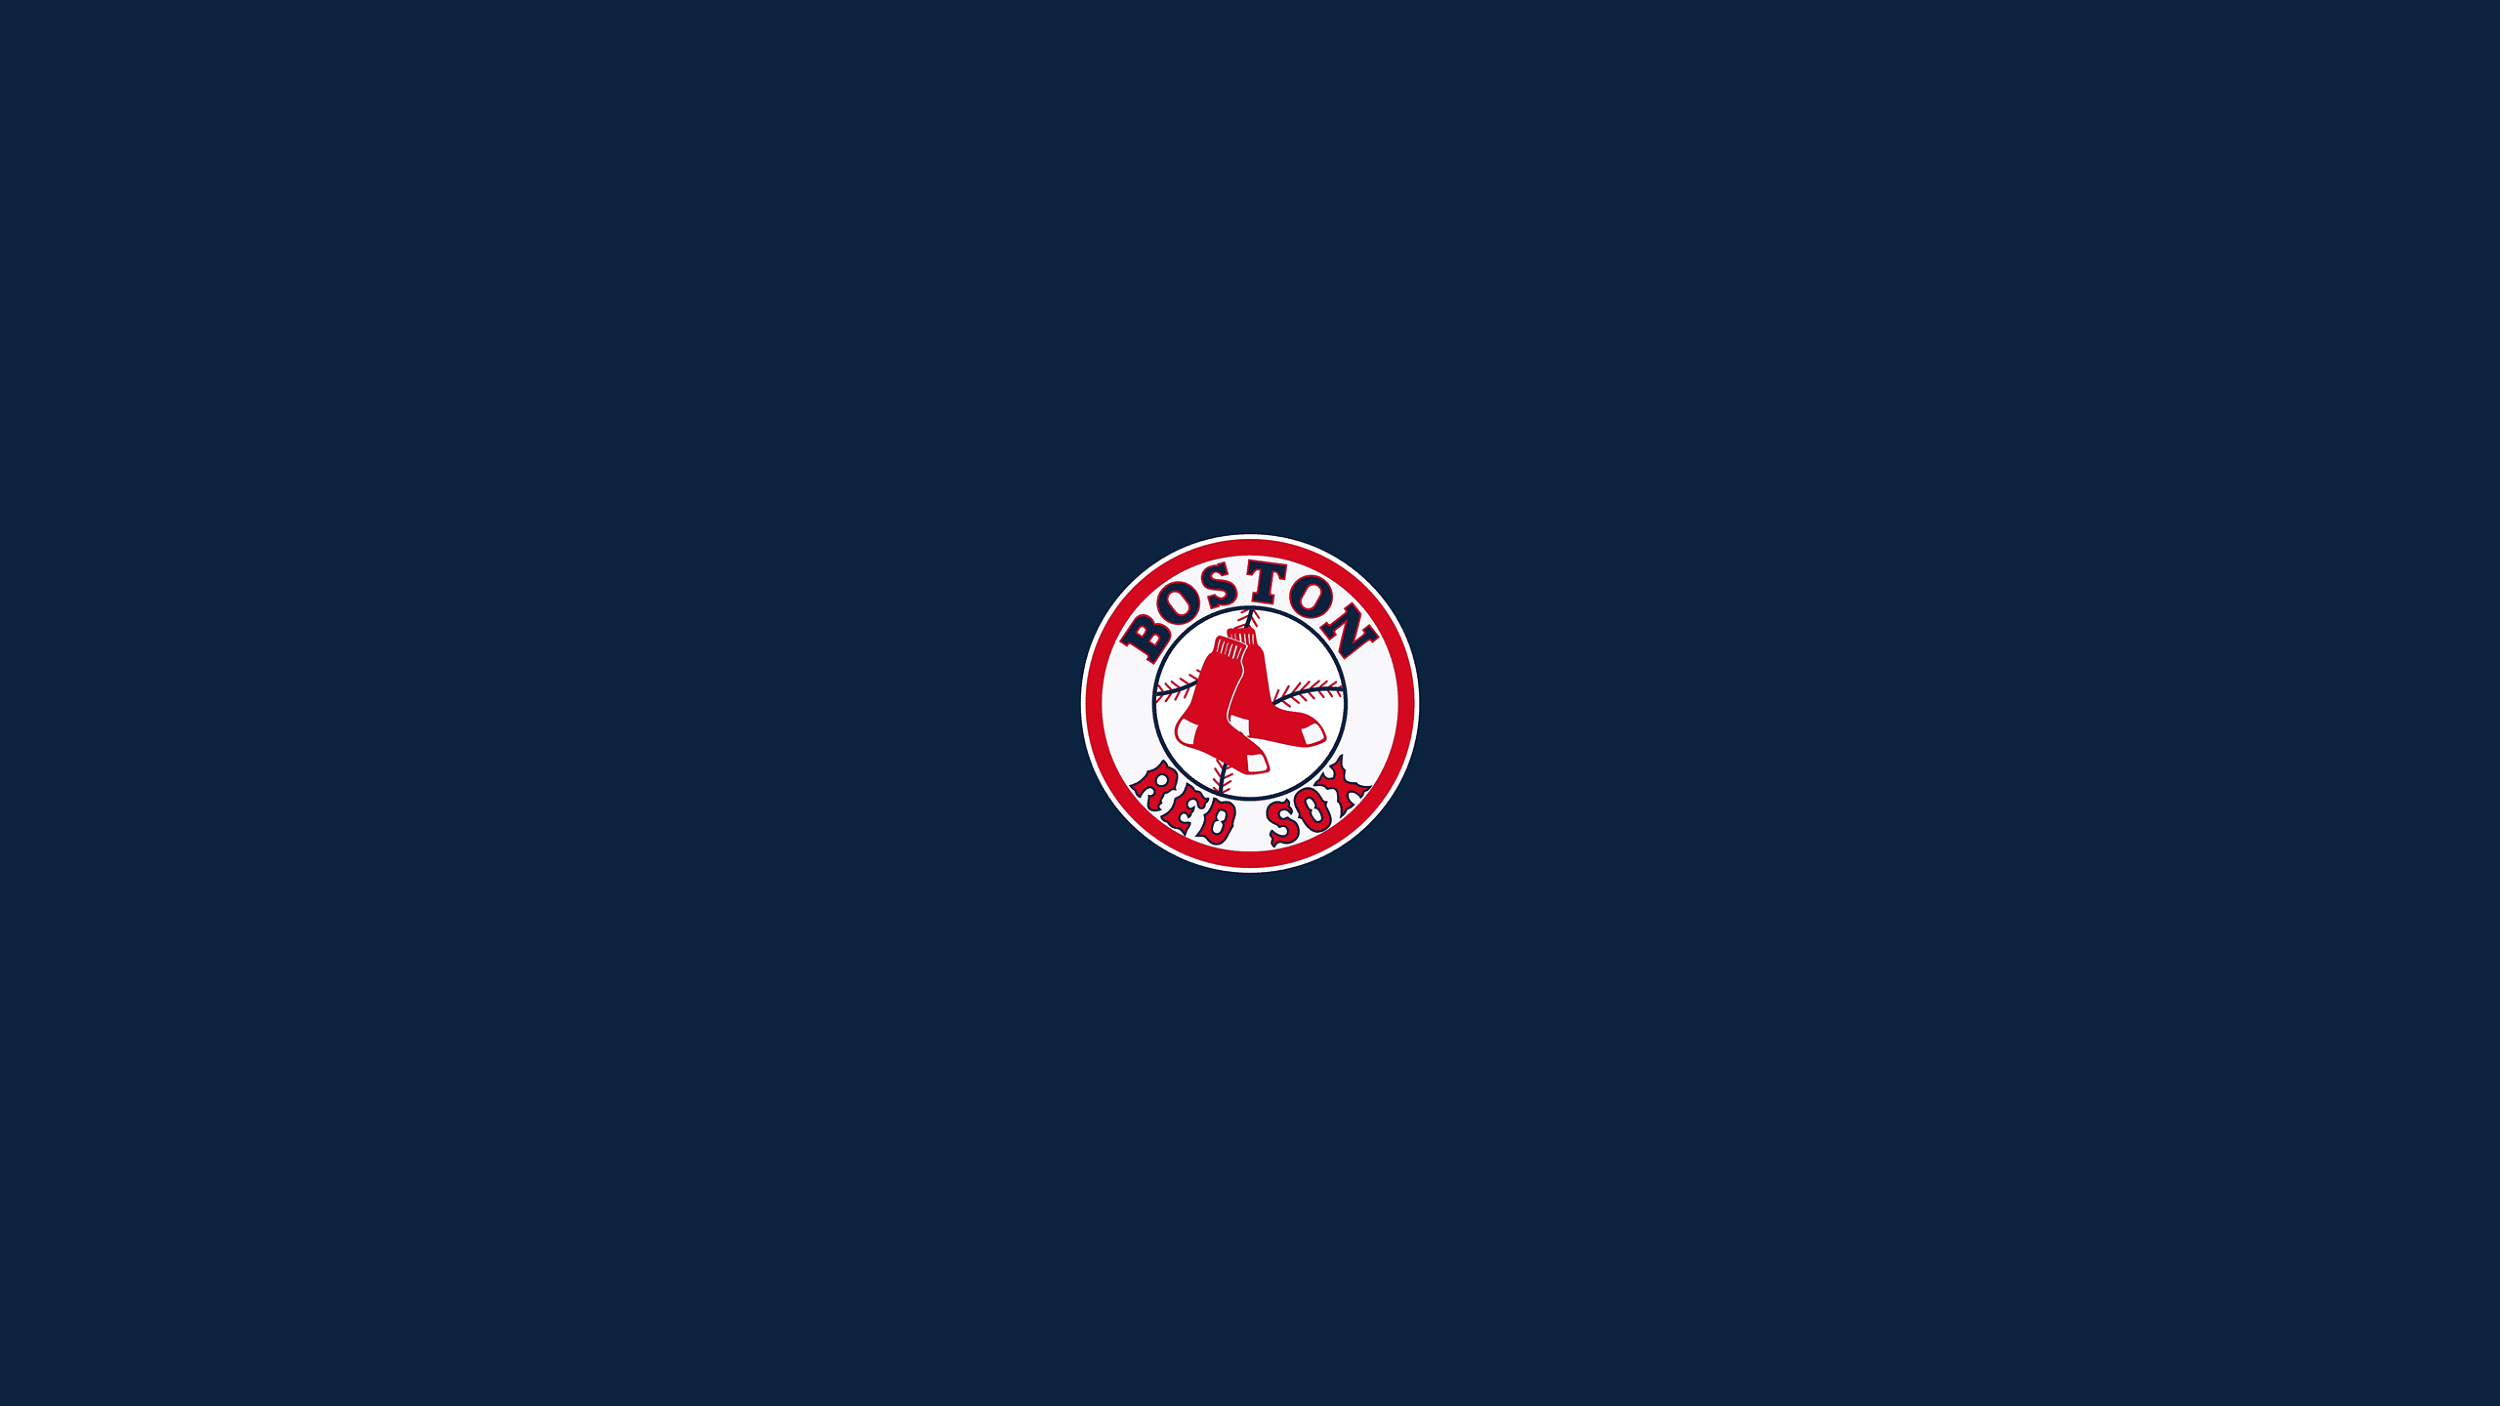 Boston Red Sox In High Resolution